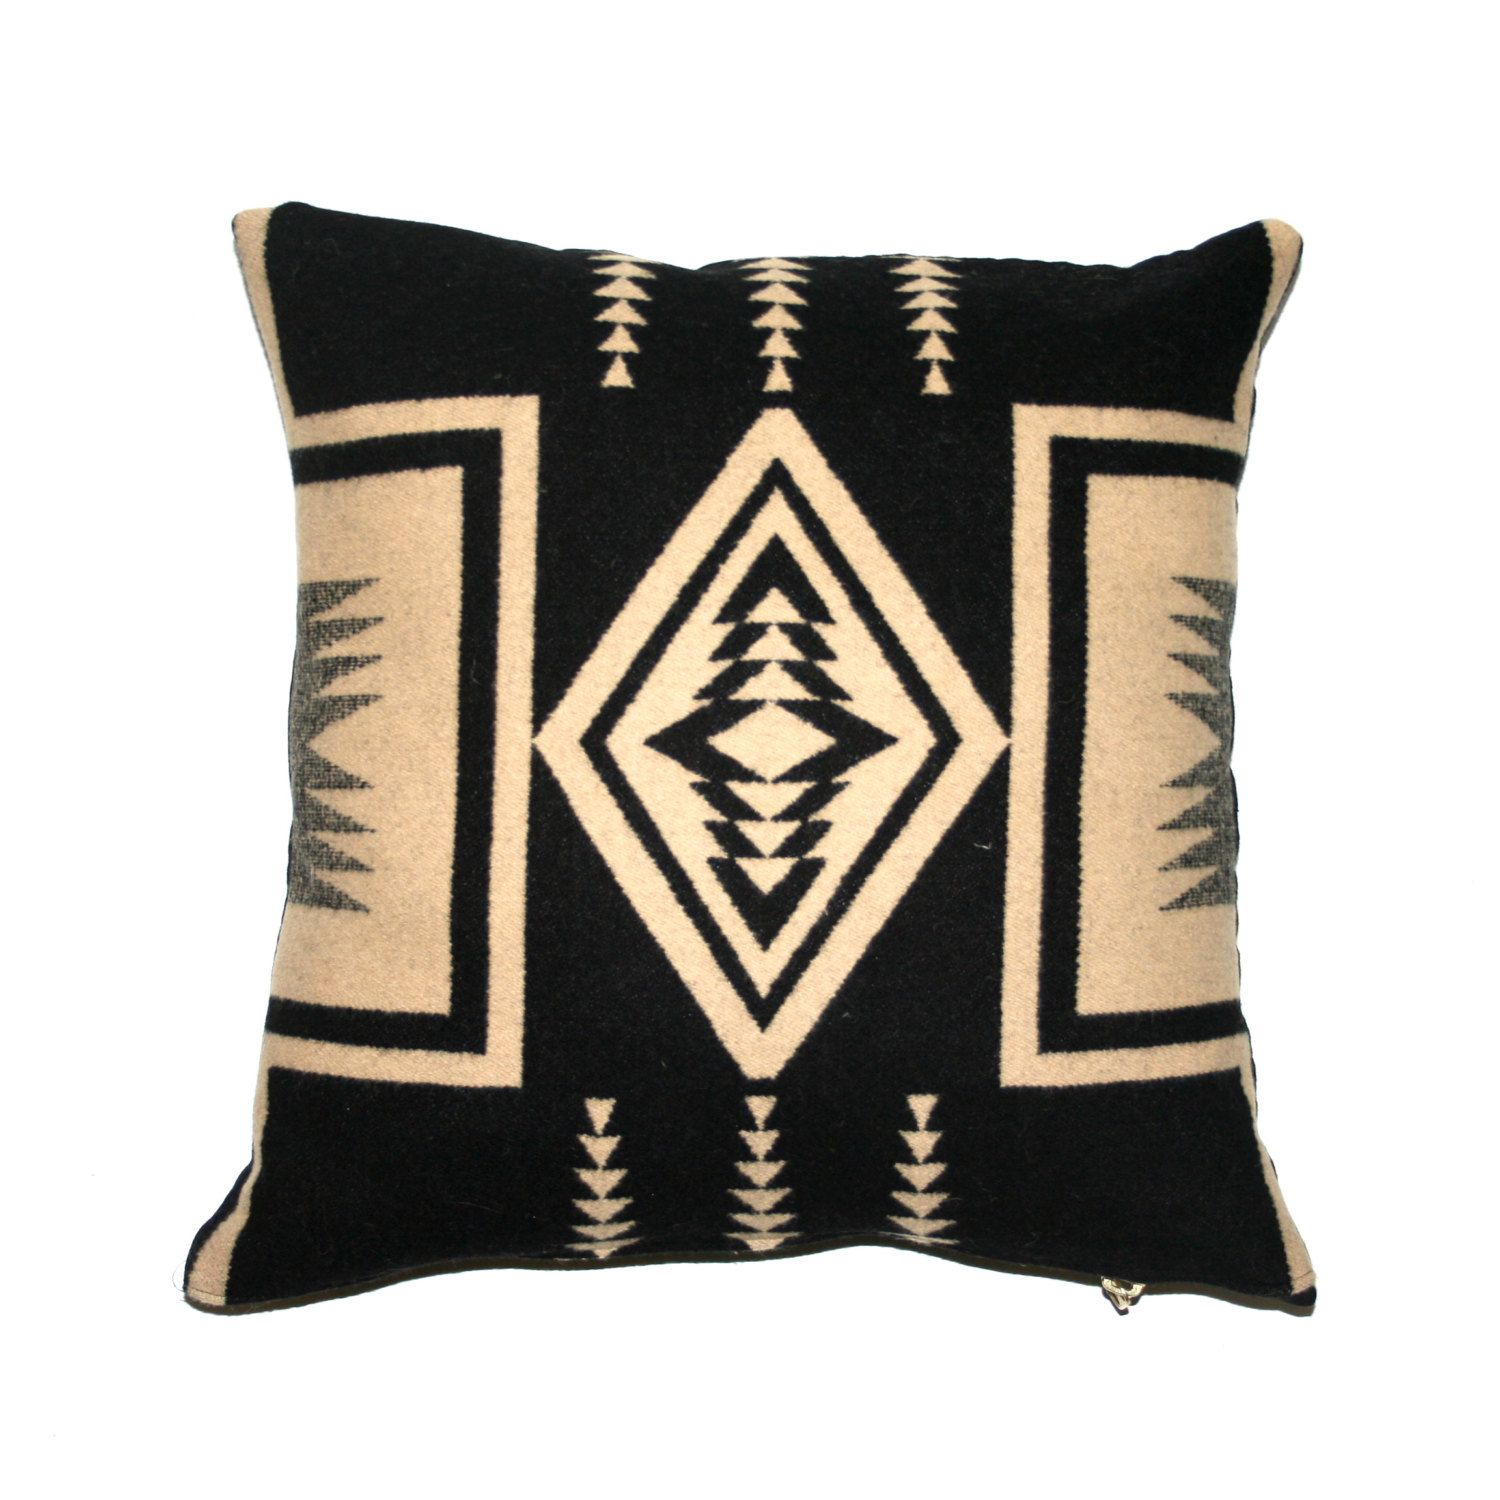 Pendleton Pillow, Wool Throw Pillow, Cushion Cover, Navajo